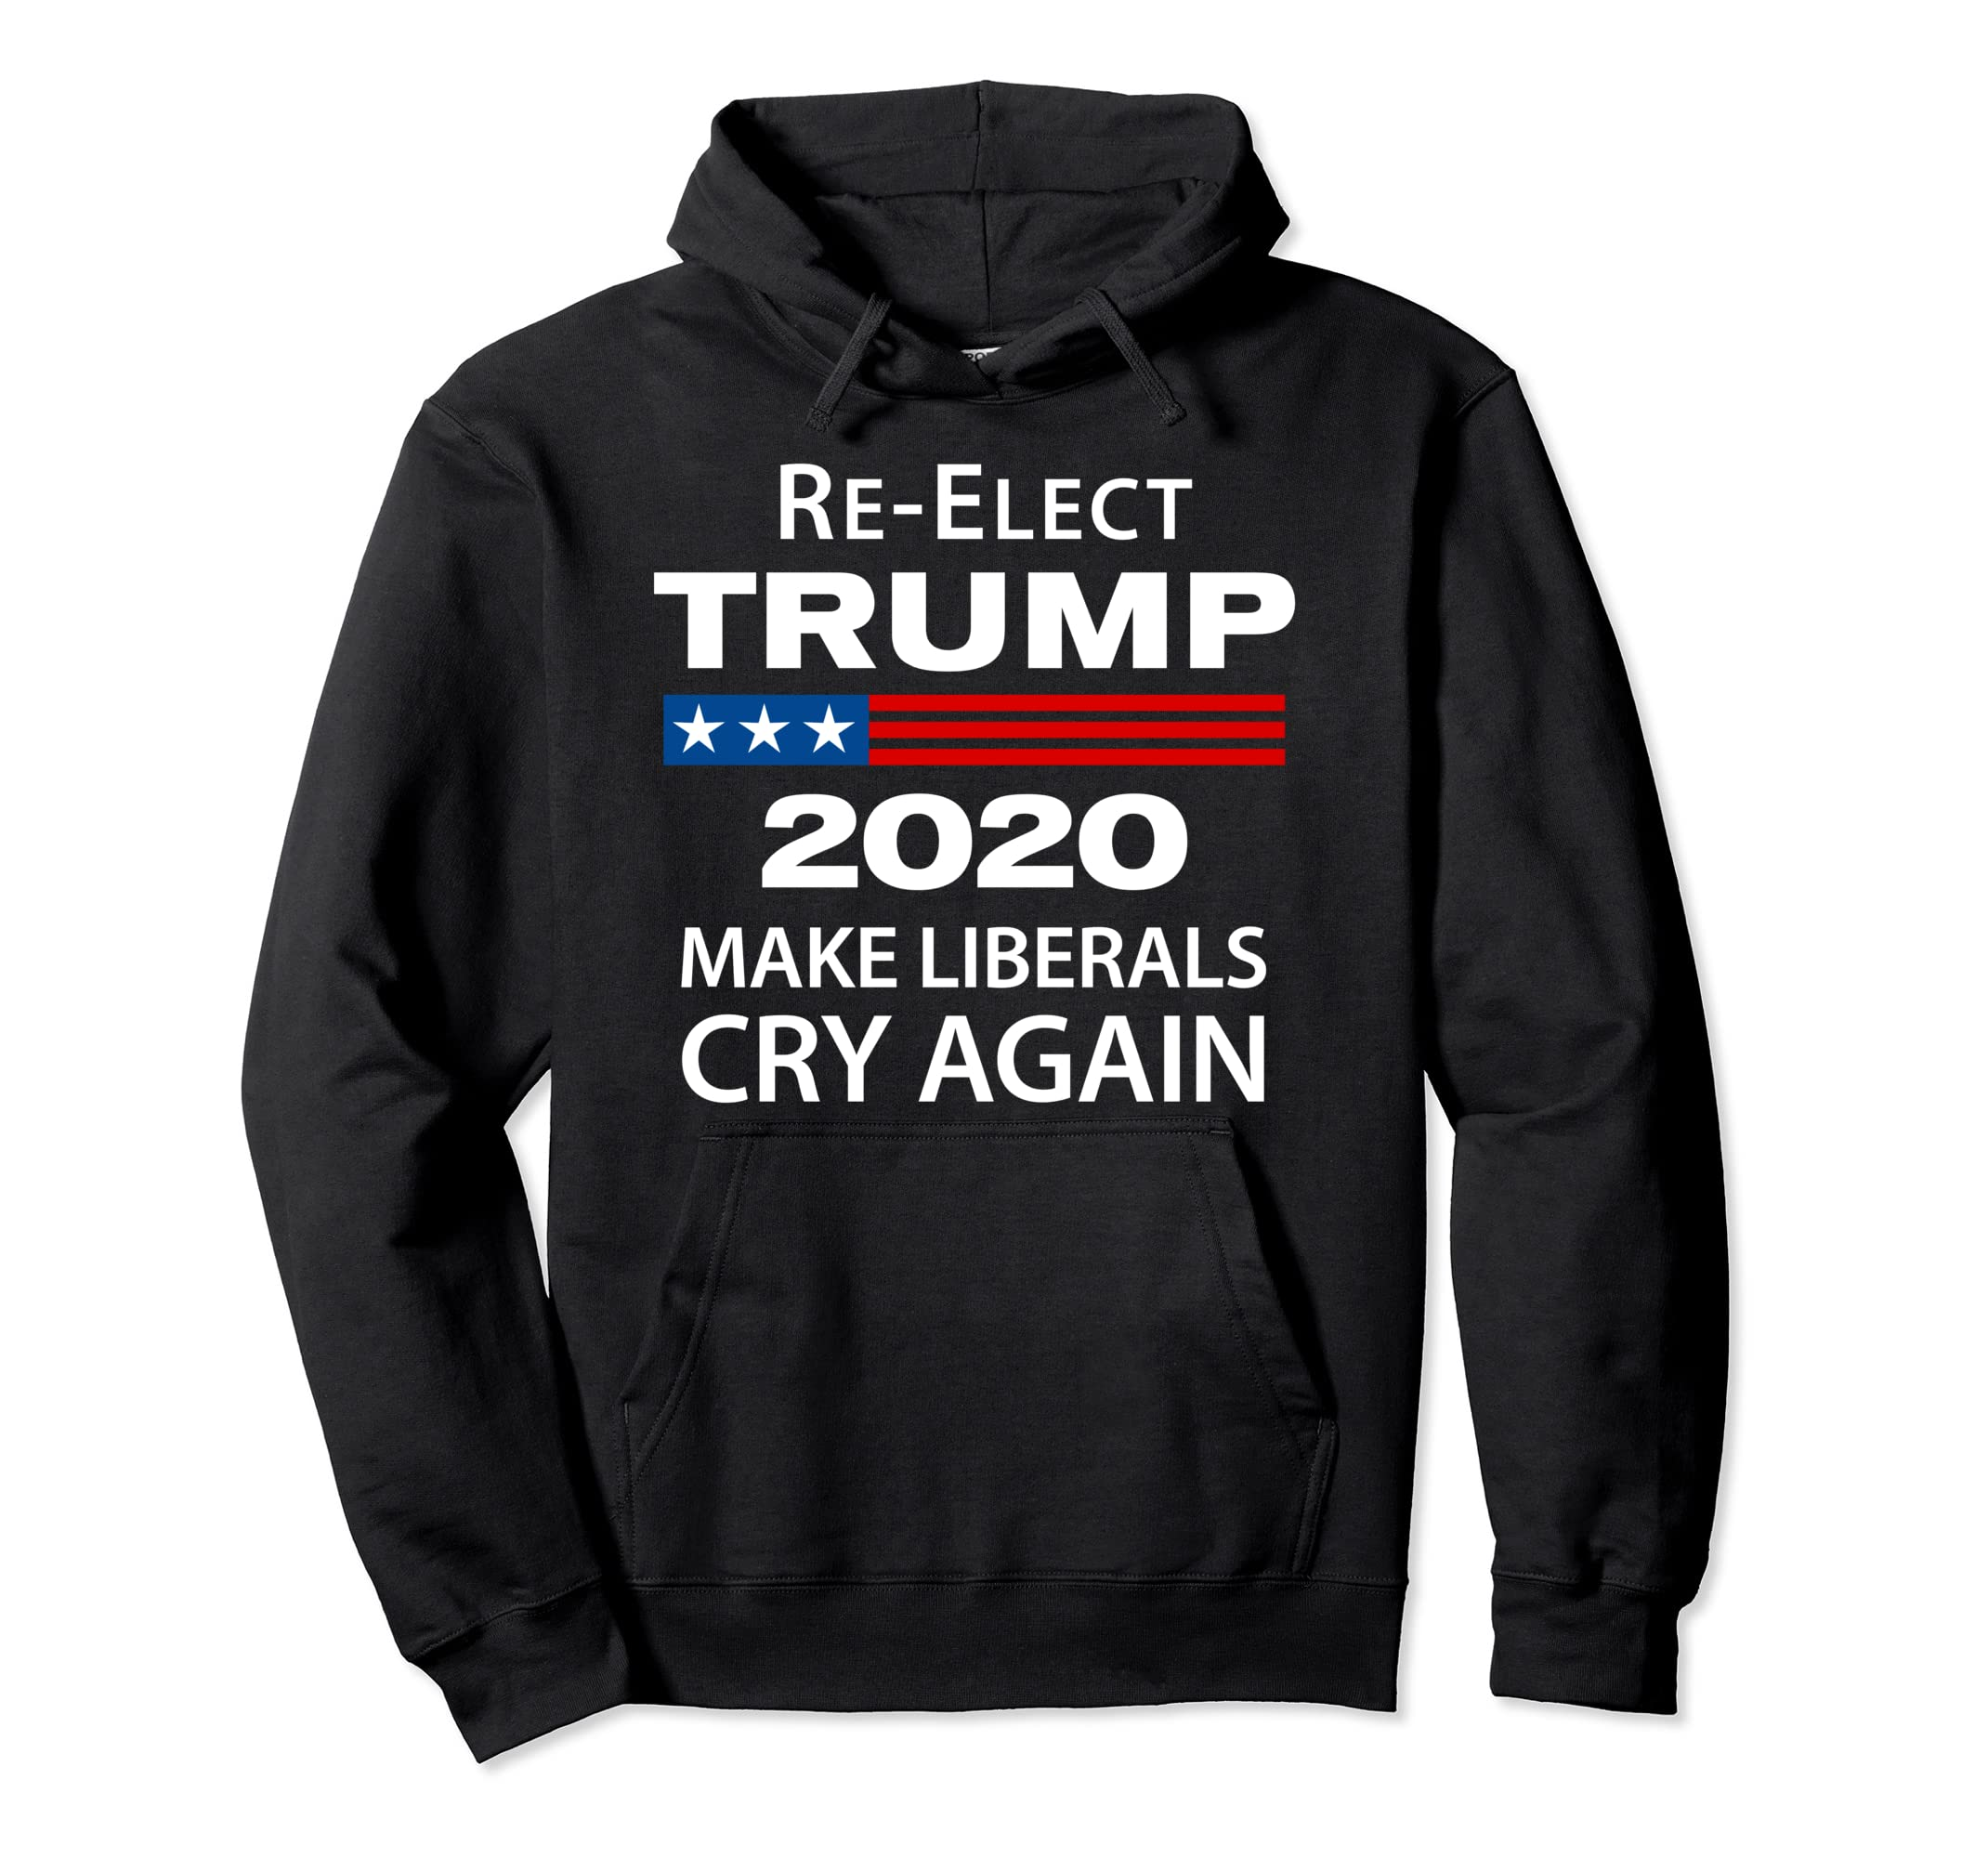 Best Mens Sweatshirts 2020 Amazon.com: Donald Trump 2020 Make Liberals Cry Again Mens Hoodie